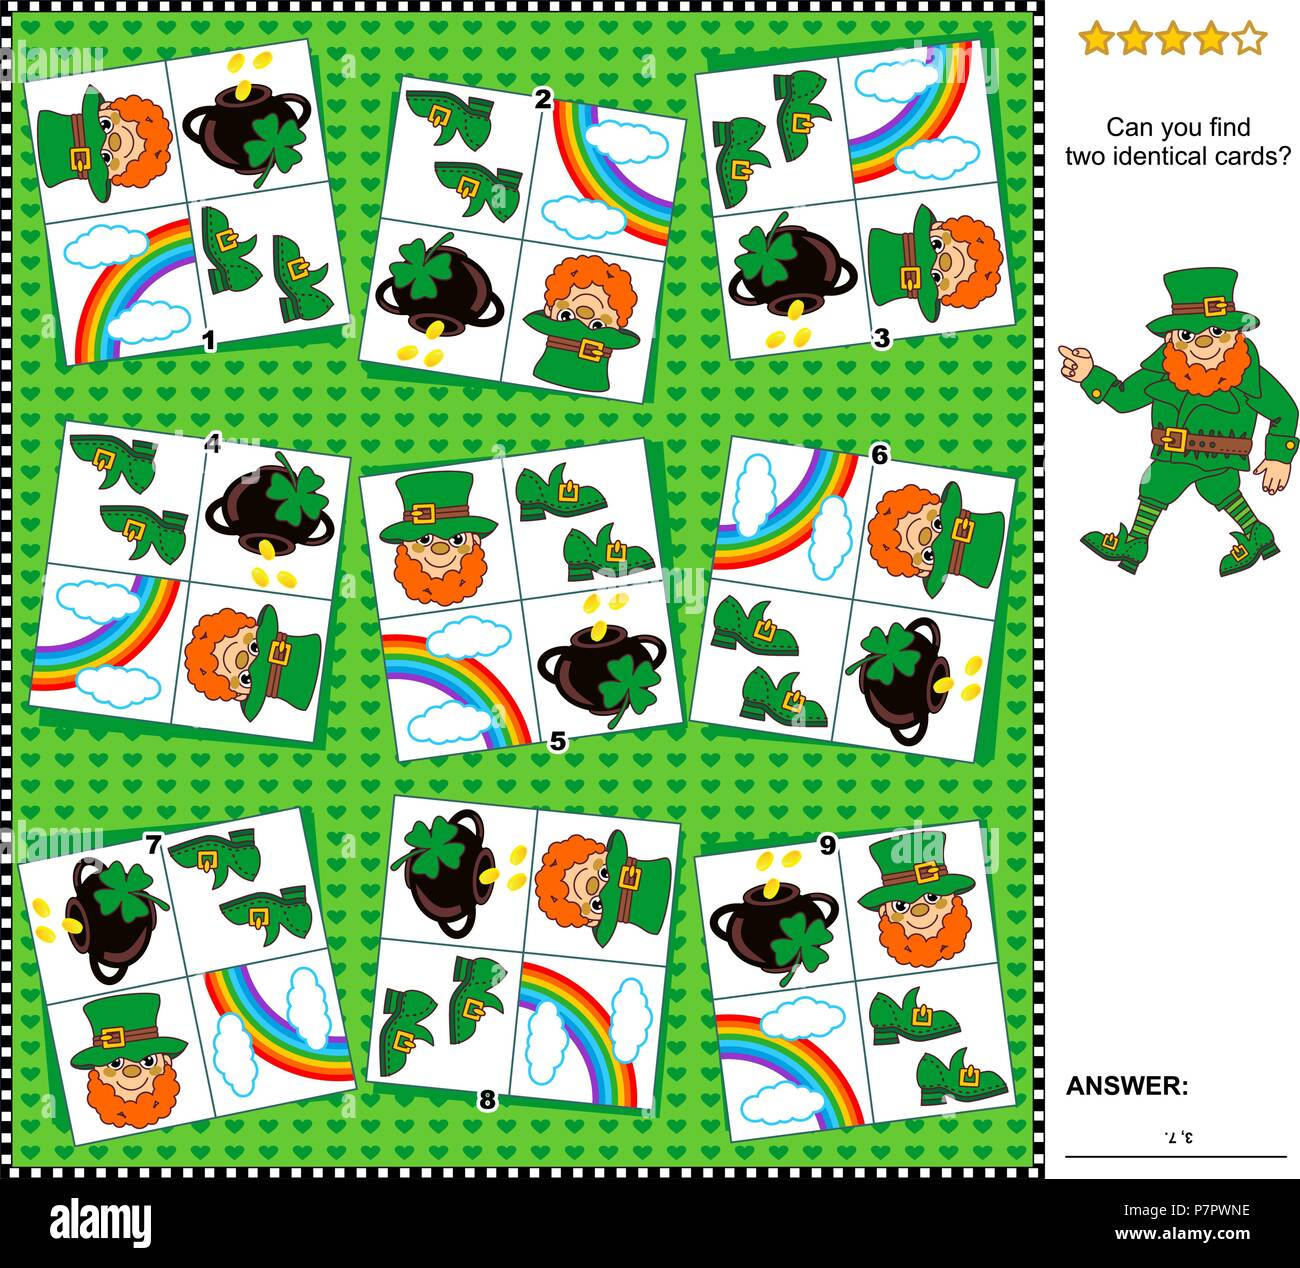 Visual logic puzzle St  Patrick's Day themed: Find the two identical